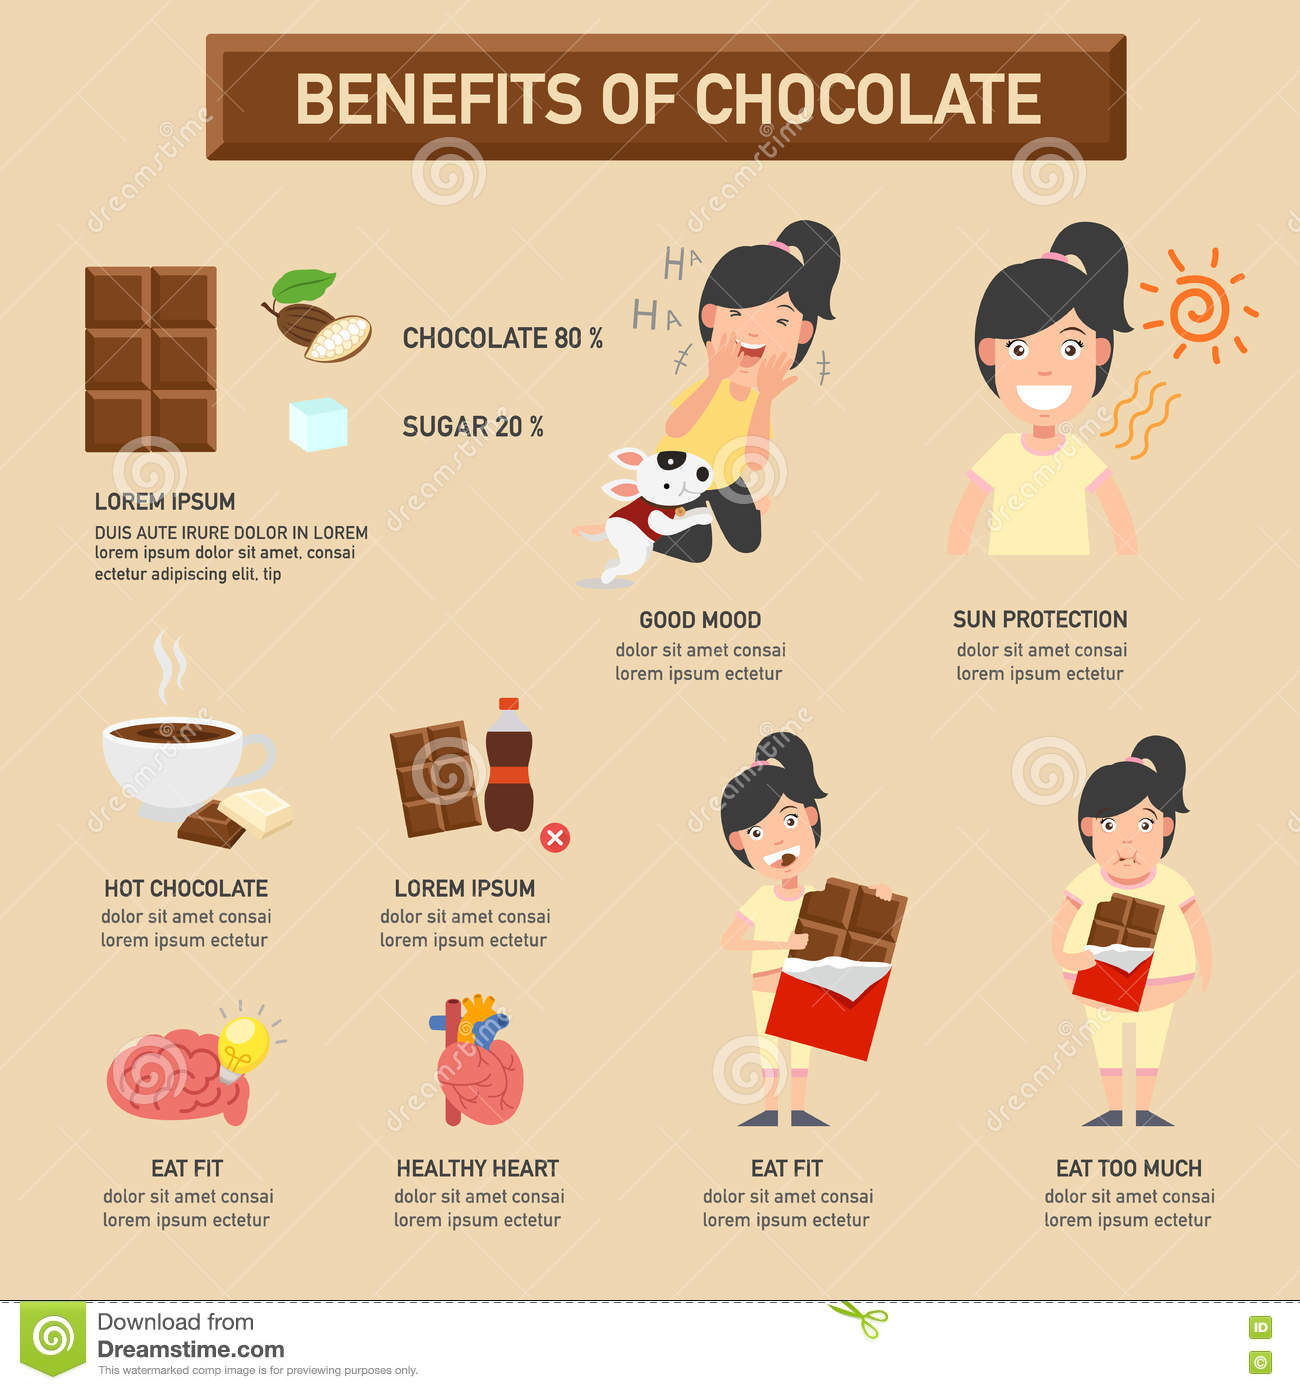 Benefits Of Chocolate Infographic Stock Vector - Image: 79773522